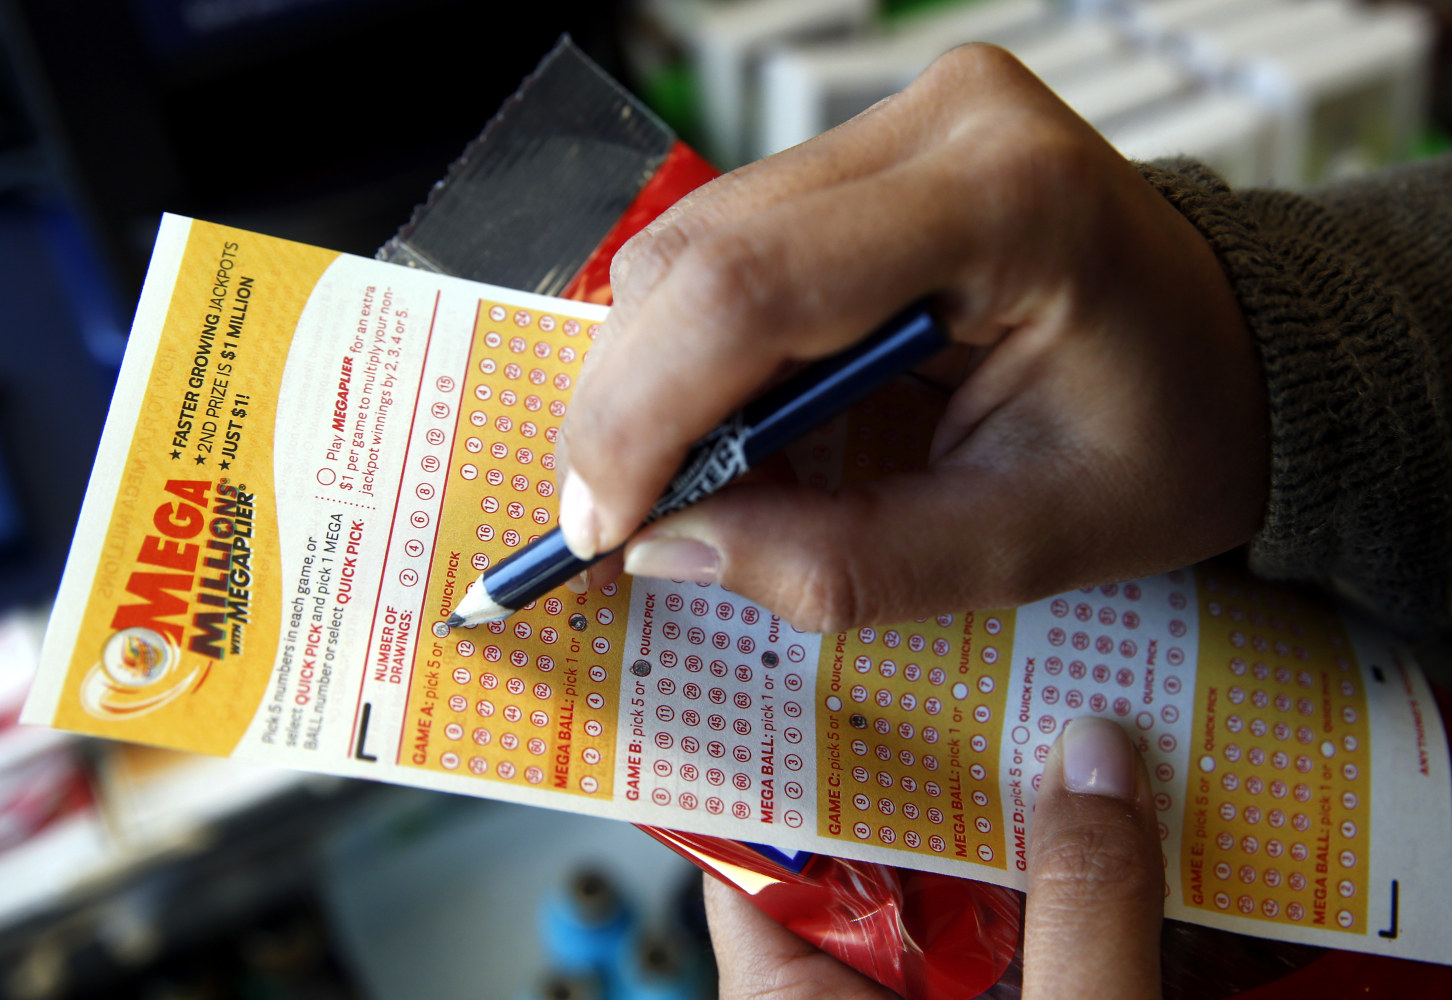 mega millions sweepstakes phone call winning 540m mega millions ticket sold in indiana nbc news 7227